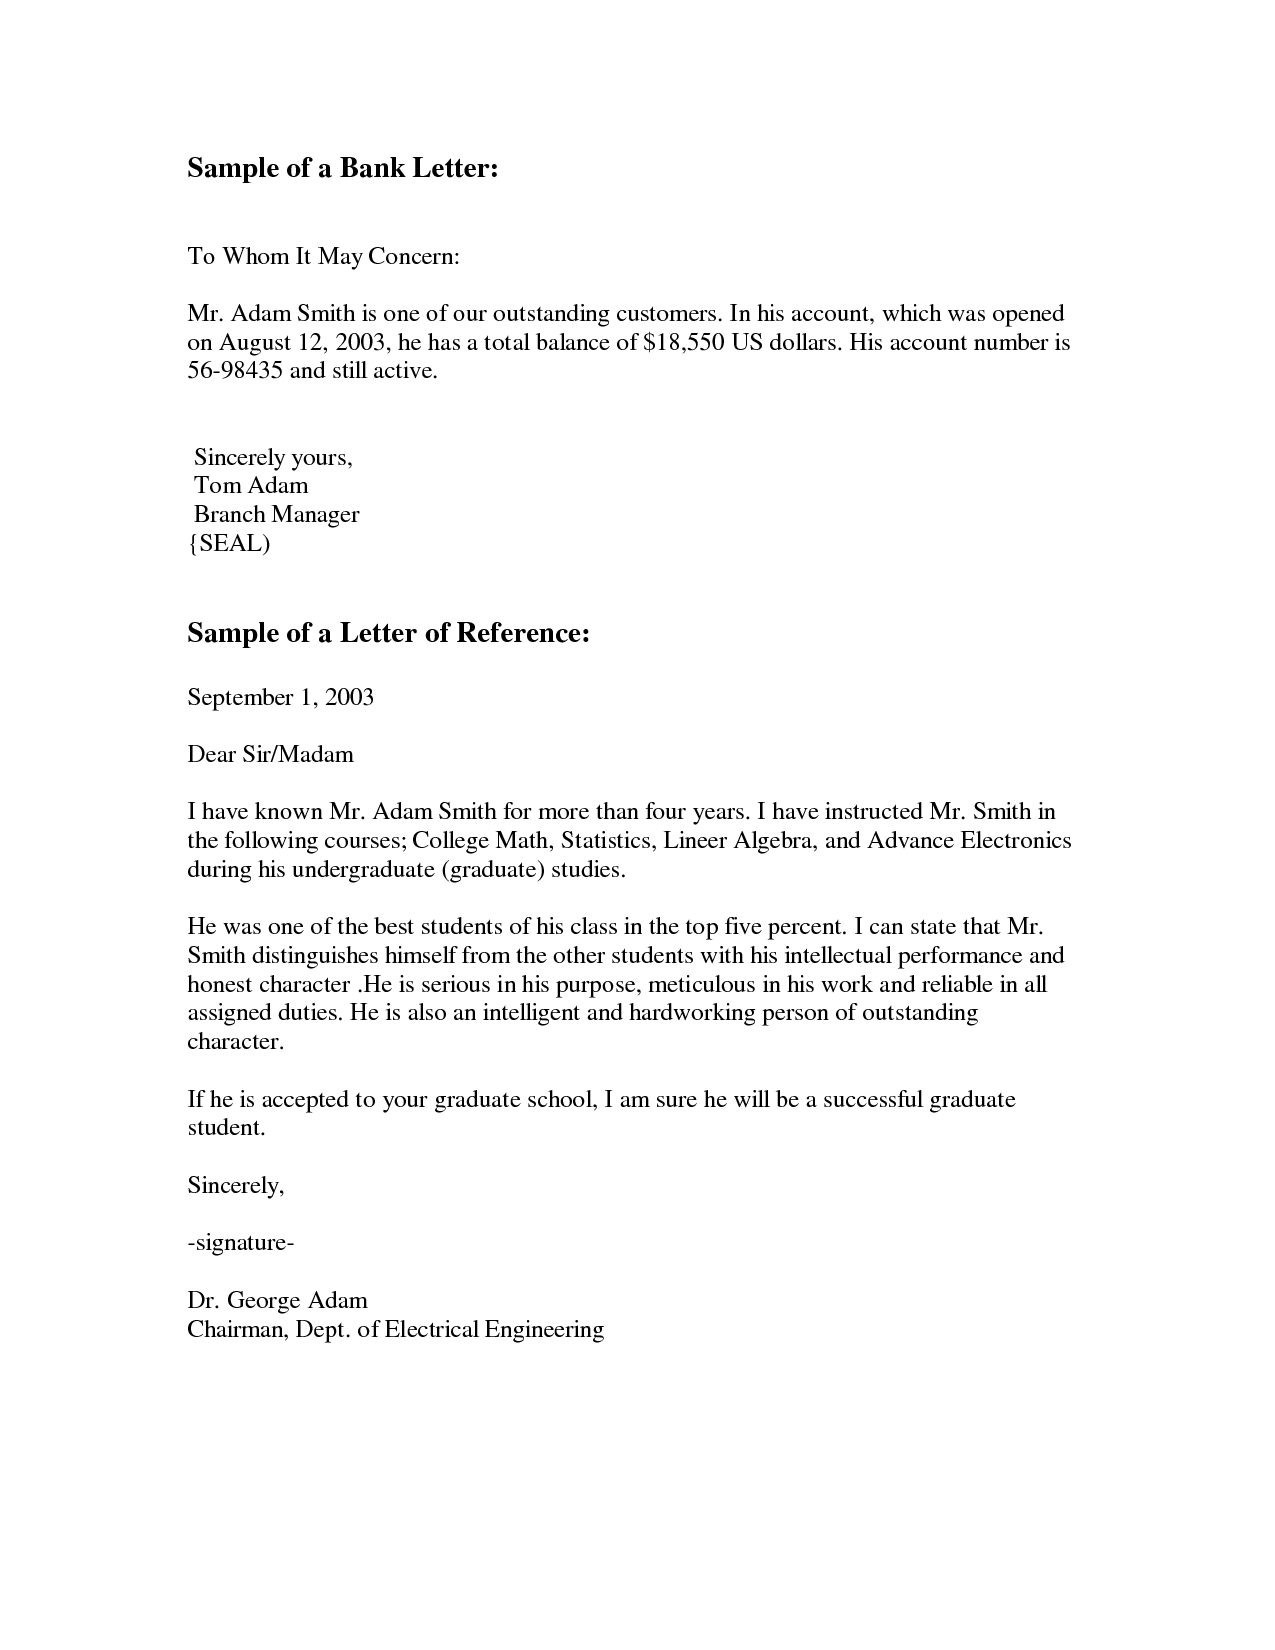 letter of recommendation letter template Collection-Formal Letter Template Unique bylaws Template 0d Wallpapers 50 ficial Letter Template 2-k